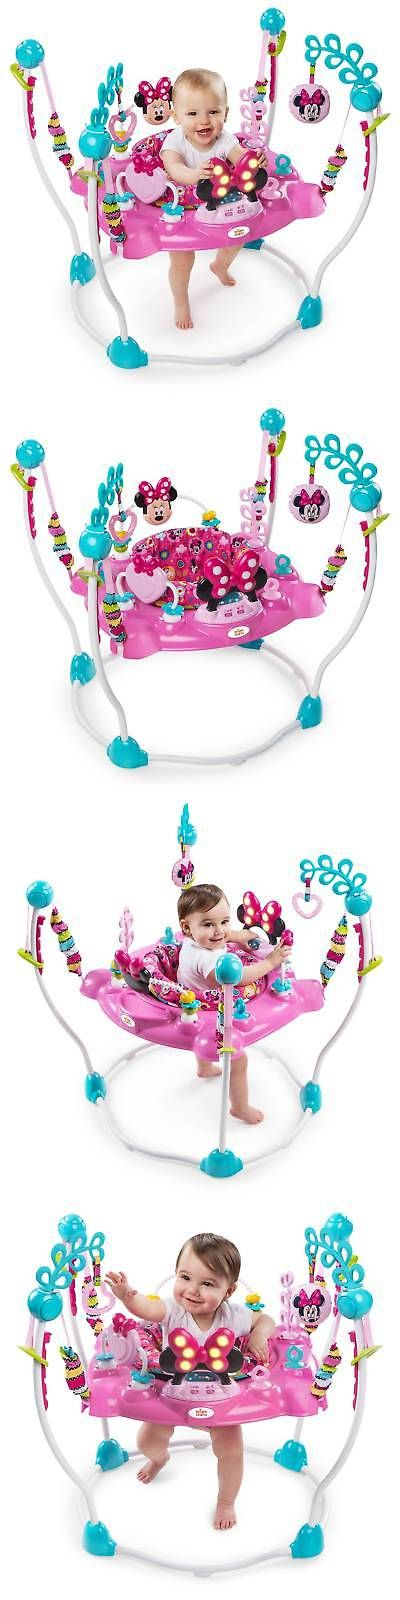 Baby Jumping Exercisers 117032: Disney Baby Minnie Mouse Peekaboo Activity Jumper -> BUY IT NOW ONLY: $87.99 on eBay!